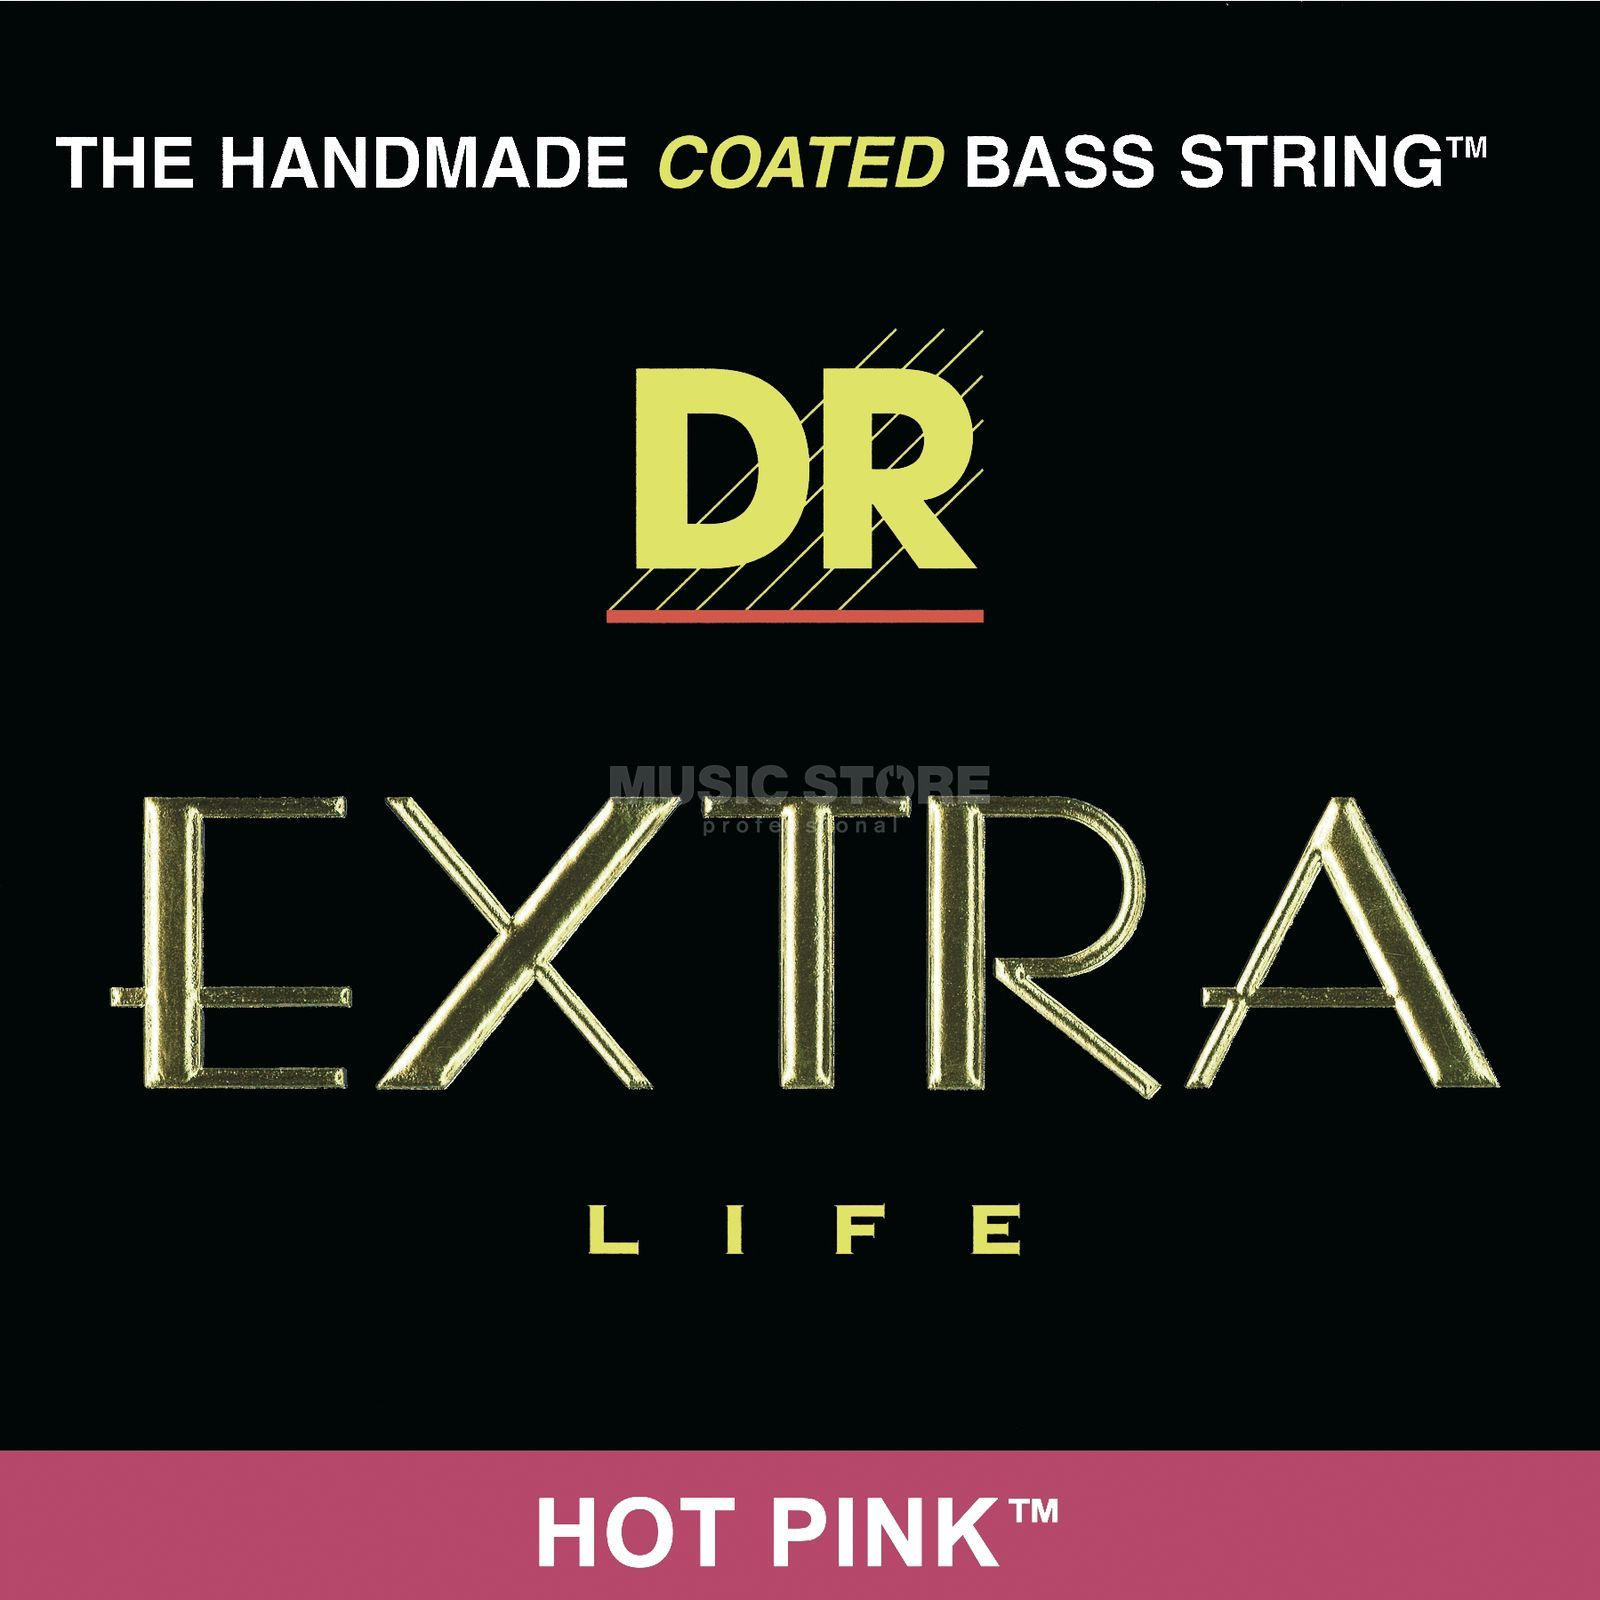 DR 4er Bass 45-105 Extra-Life Hot Pink PKB-45 Product Image